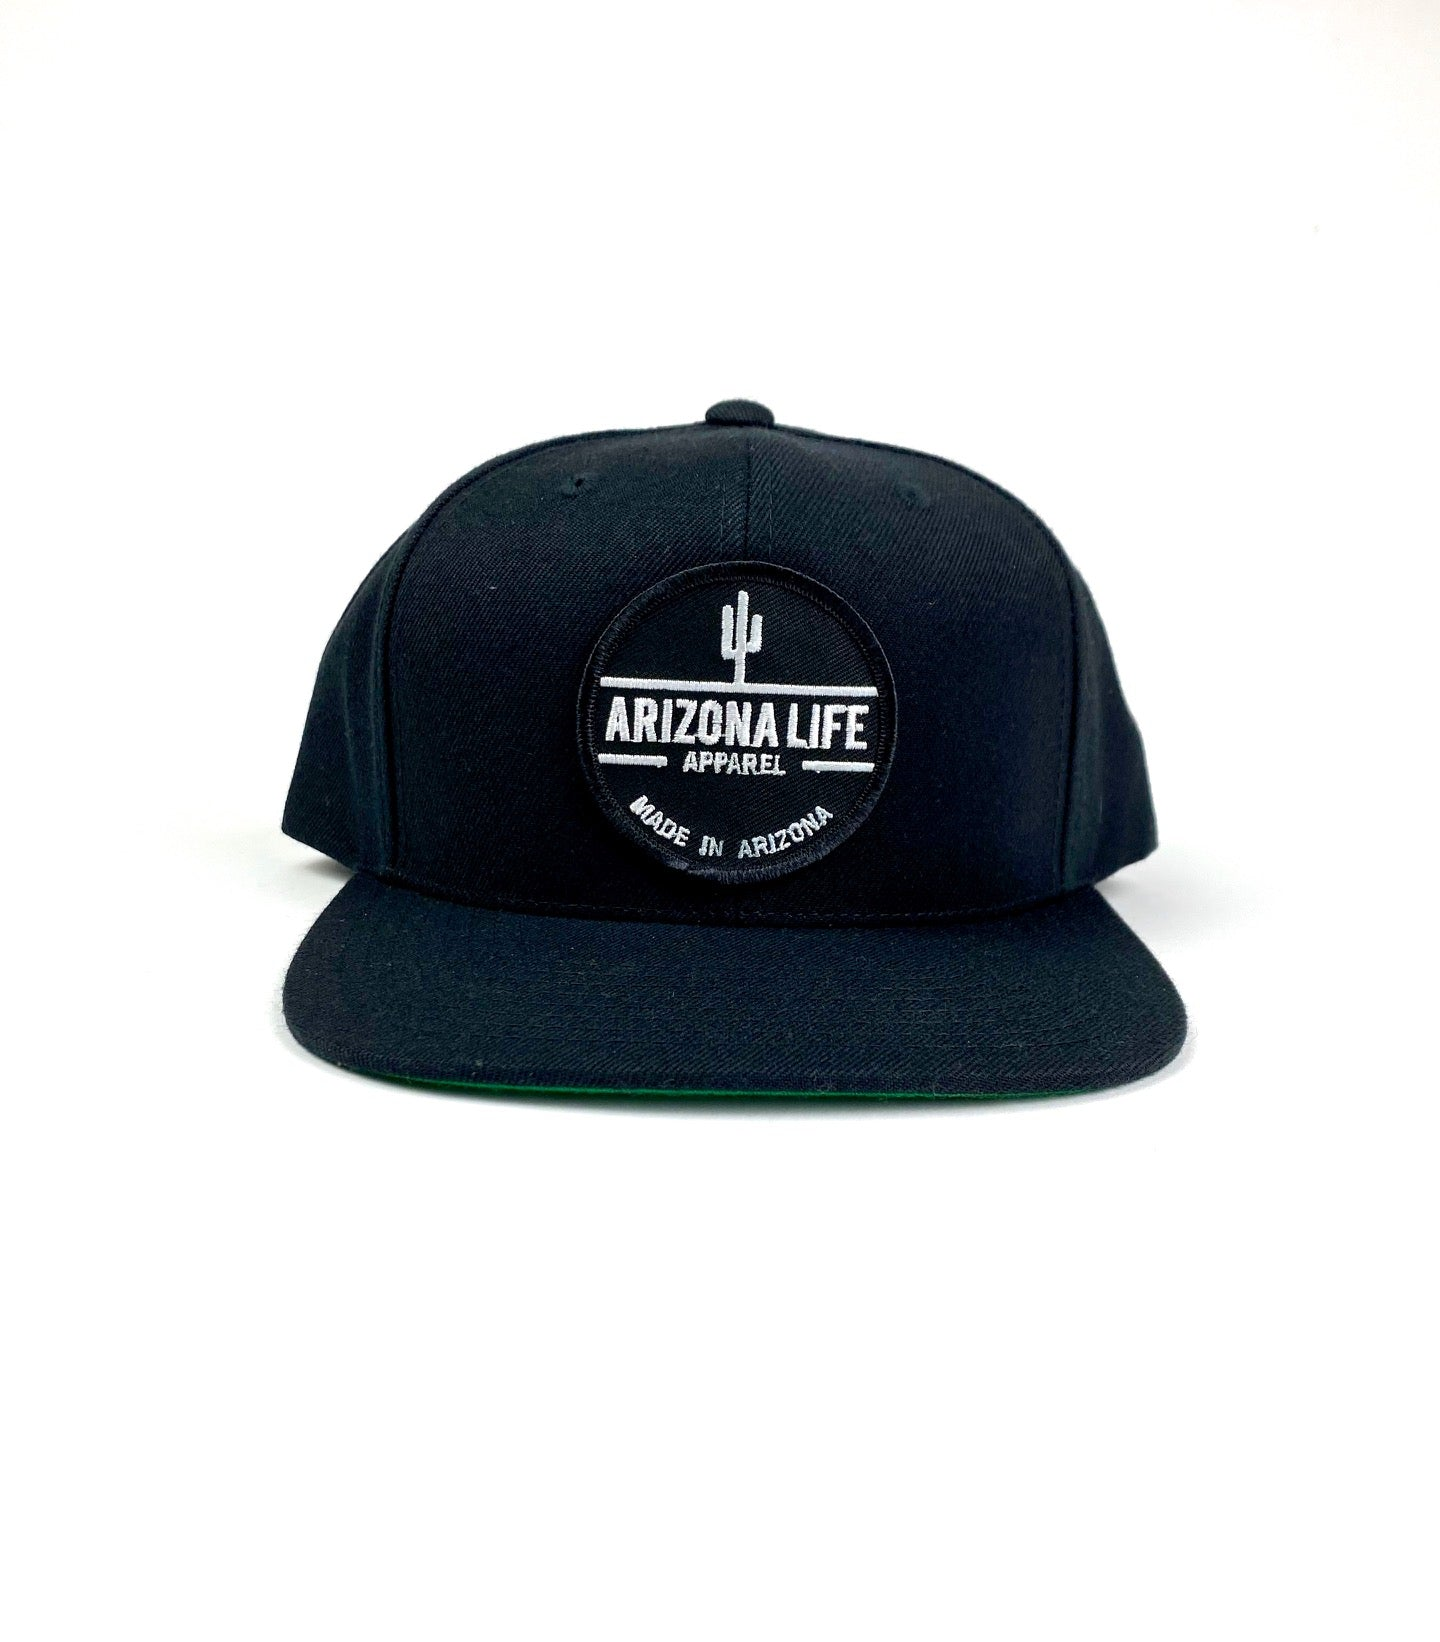 Arizona Life Hat - Snapback (black)